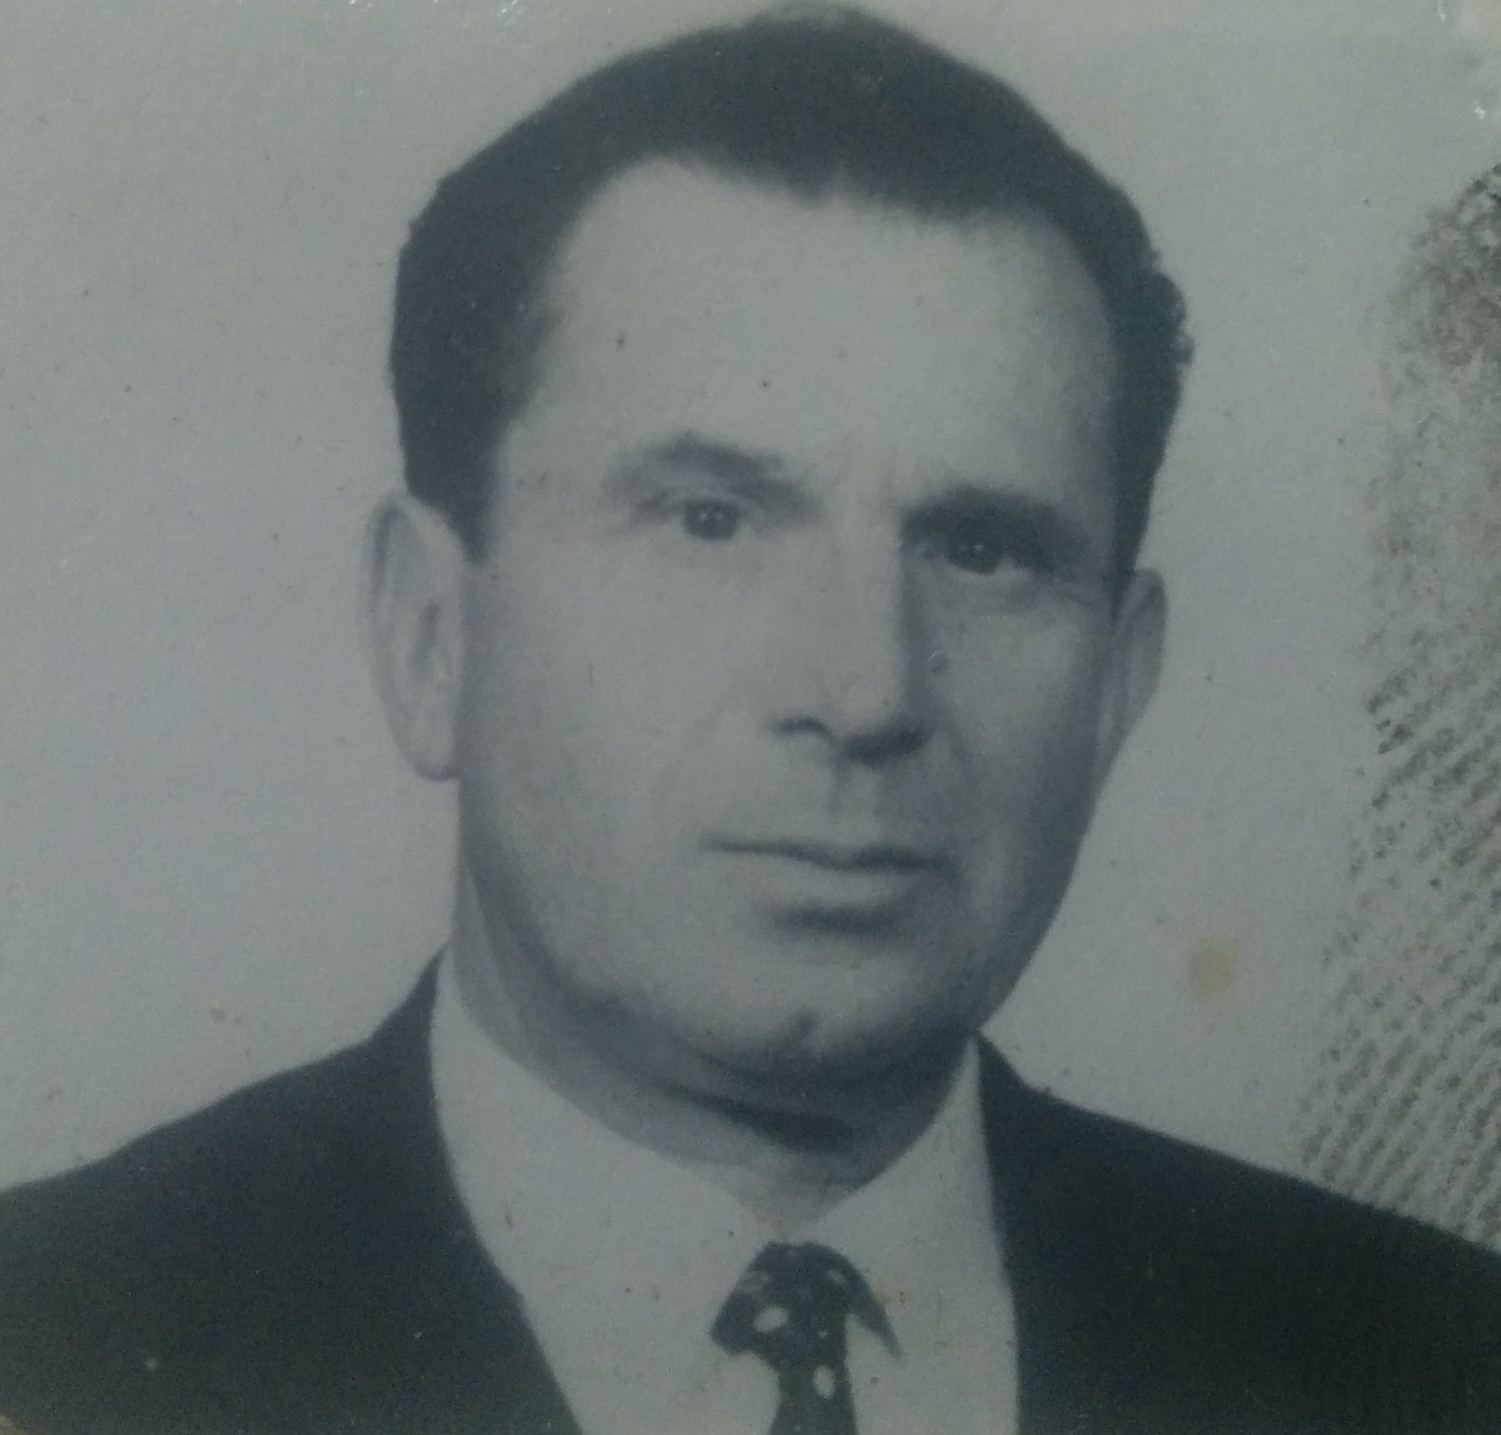 El maestro normal, Don Carlos Armando (1905-1987).